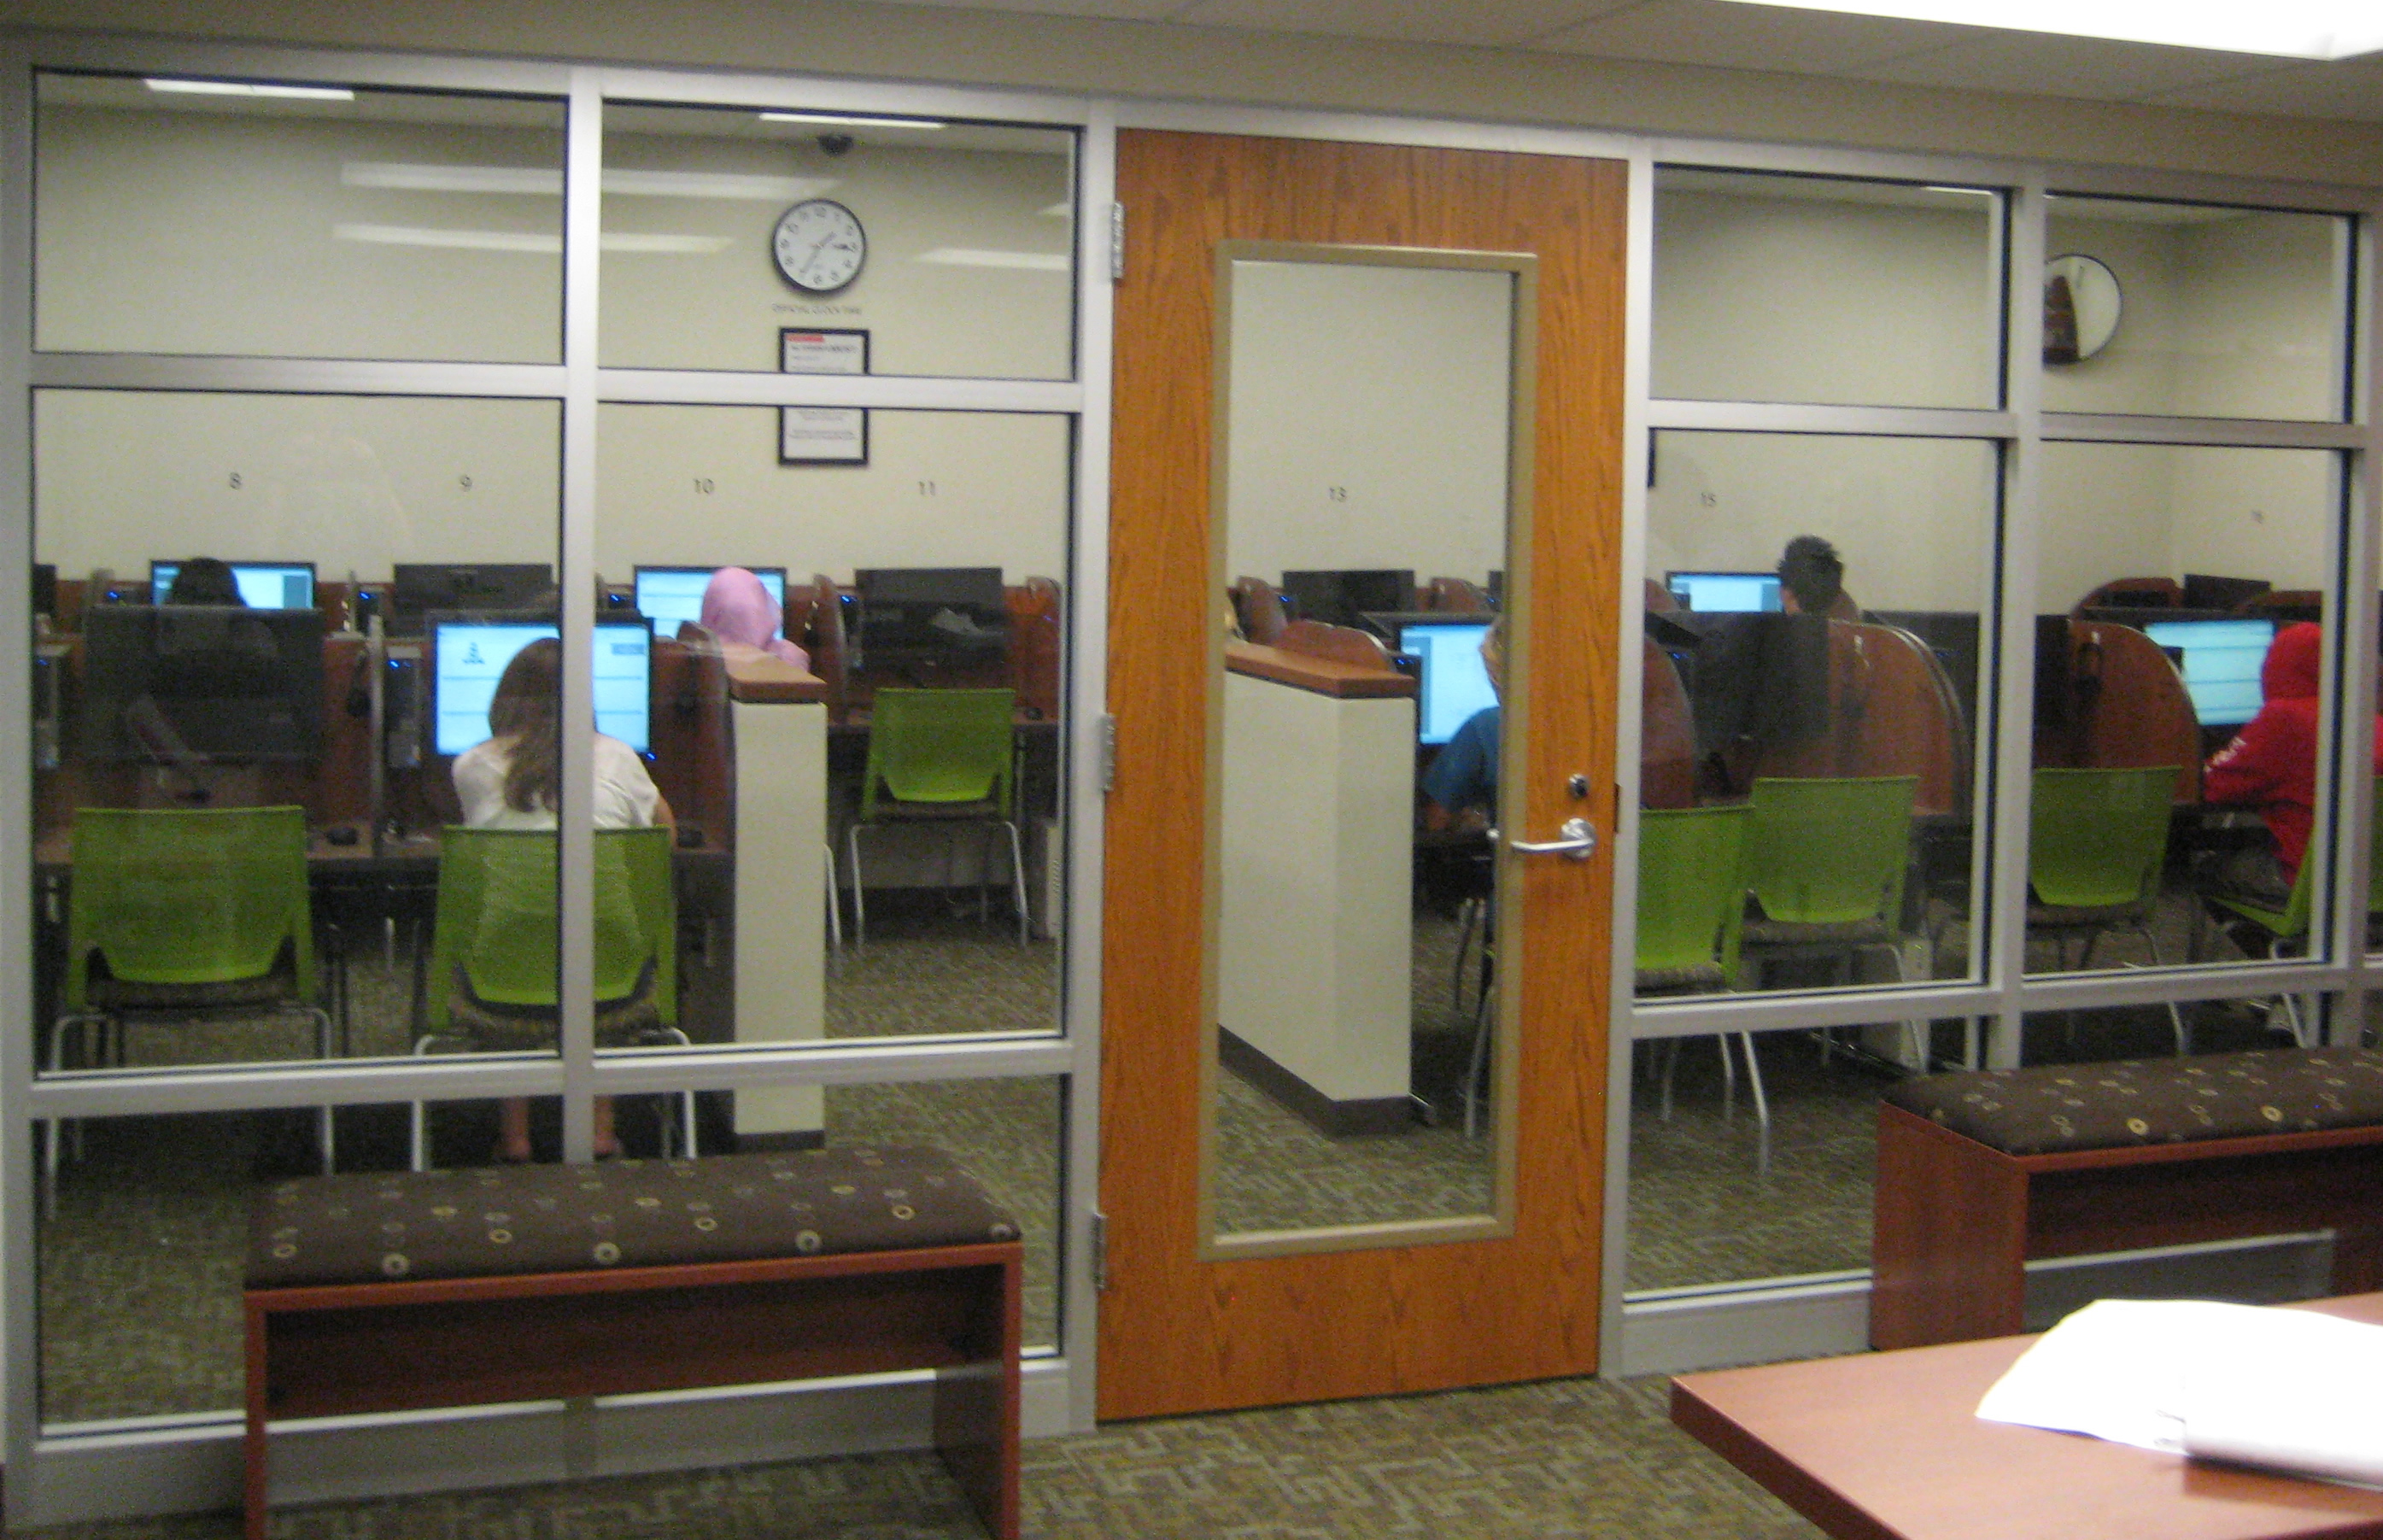 The glass wall allows proctors get a broad view of students testing.